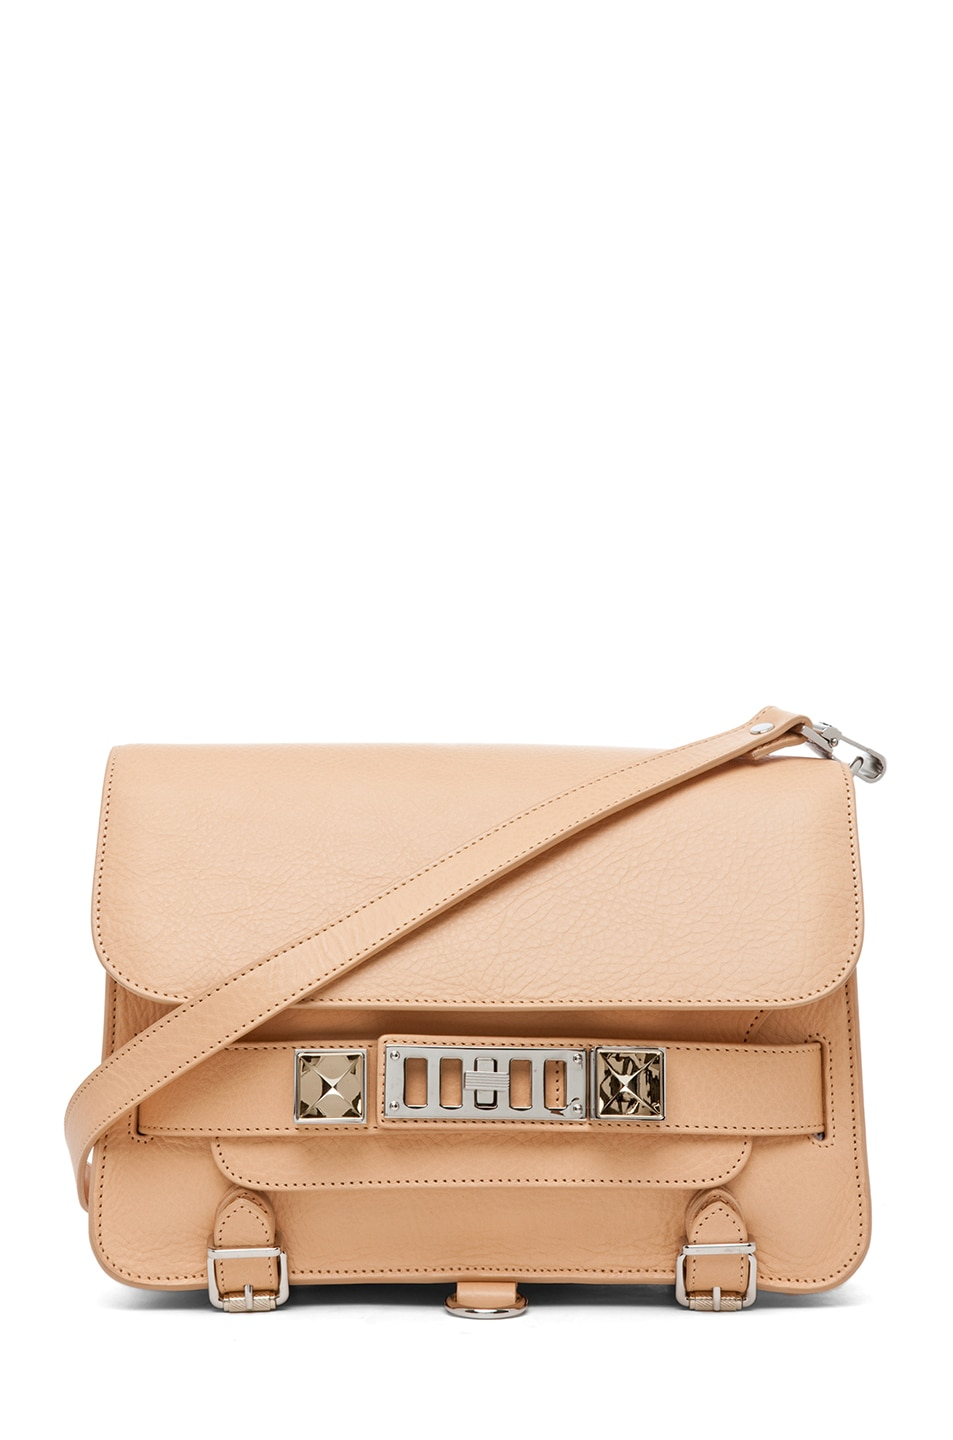 Image 1 of Proenza Schouler PS11 Classic Leather in Sorbet